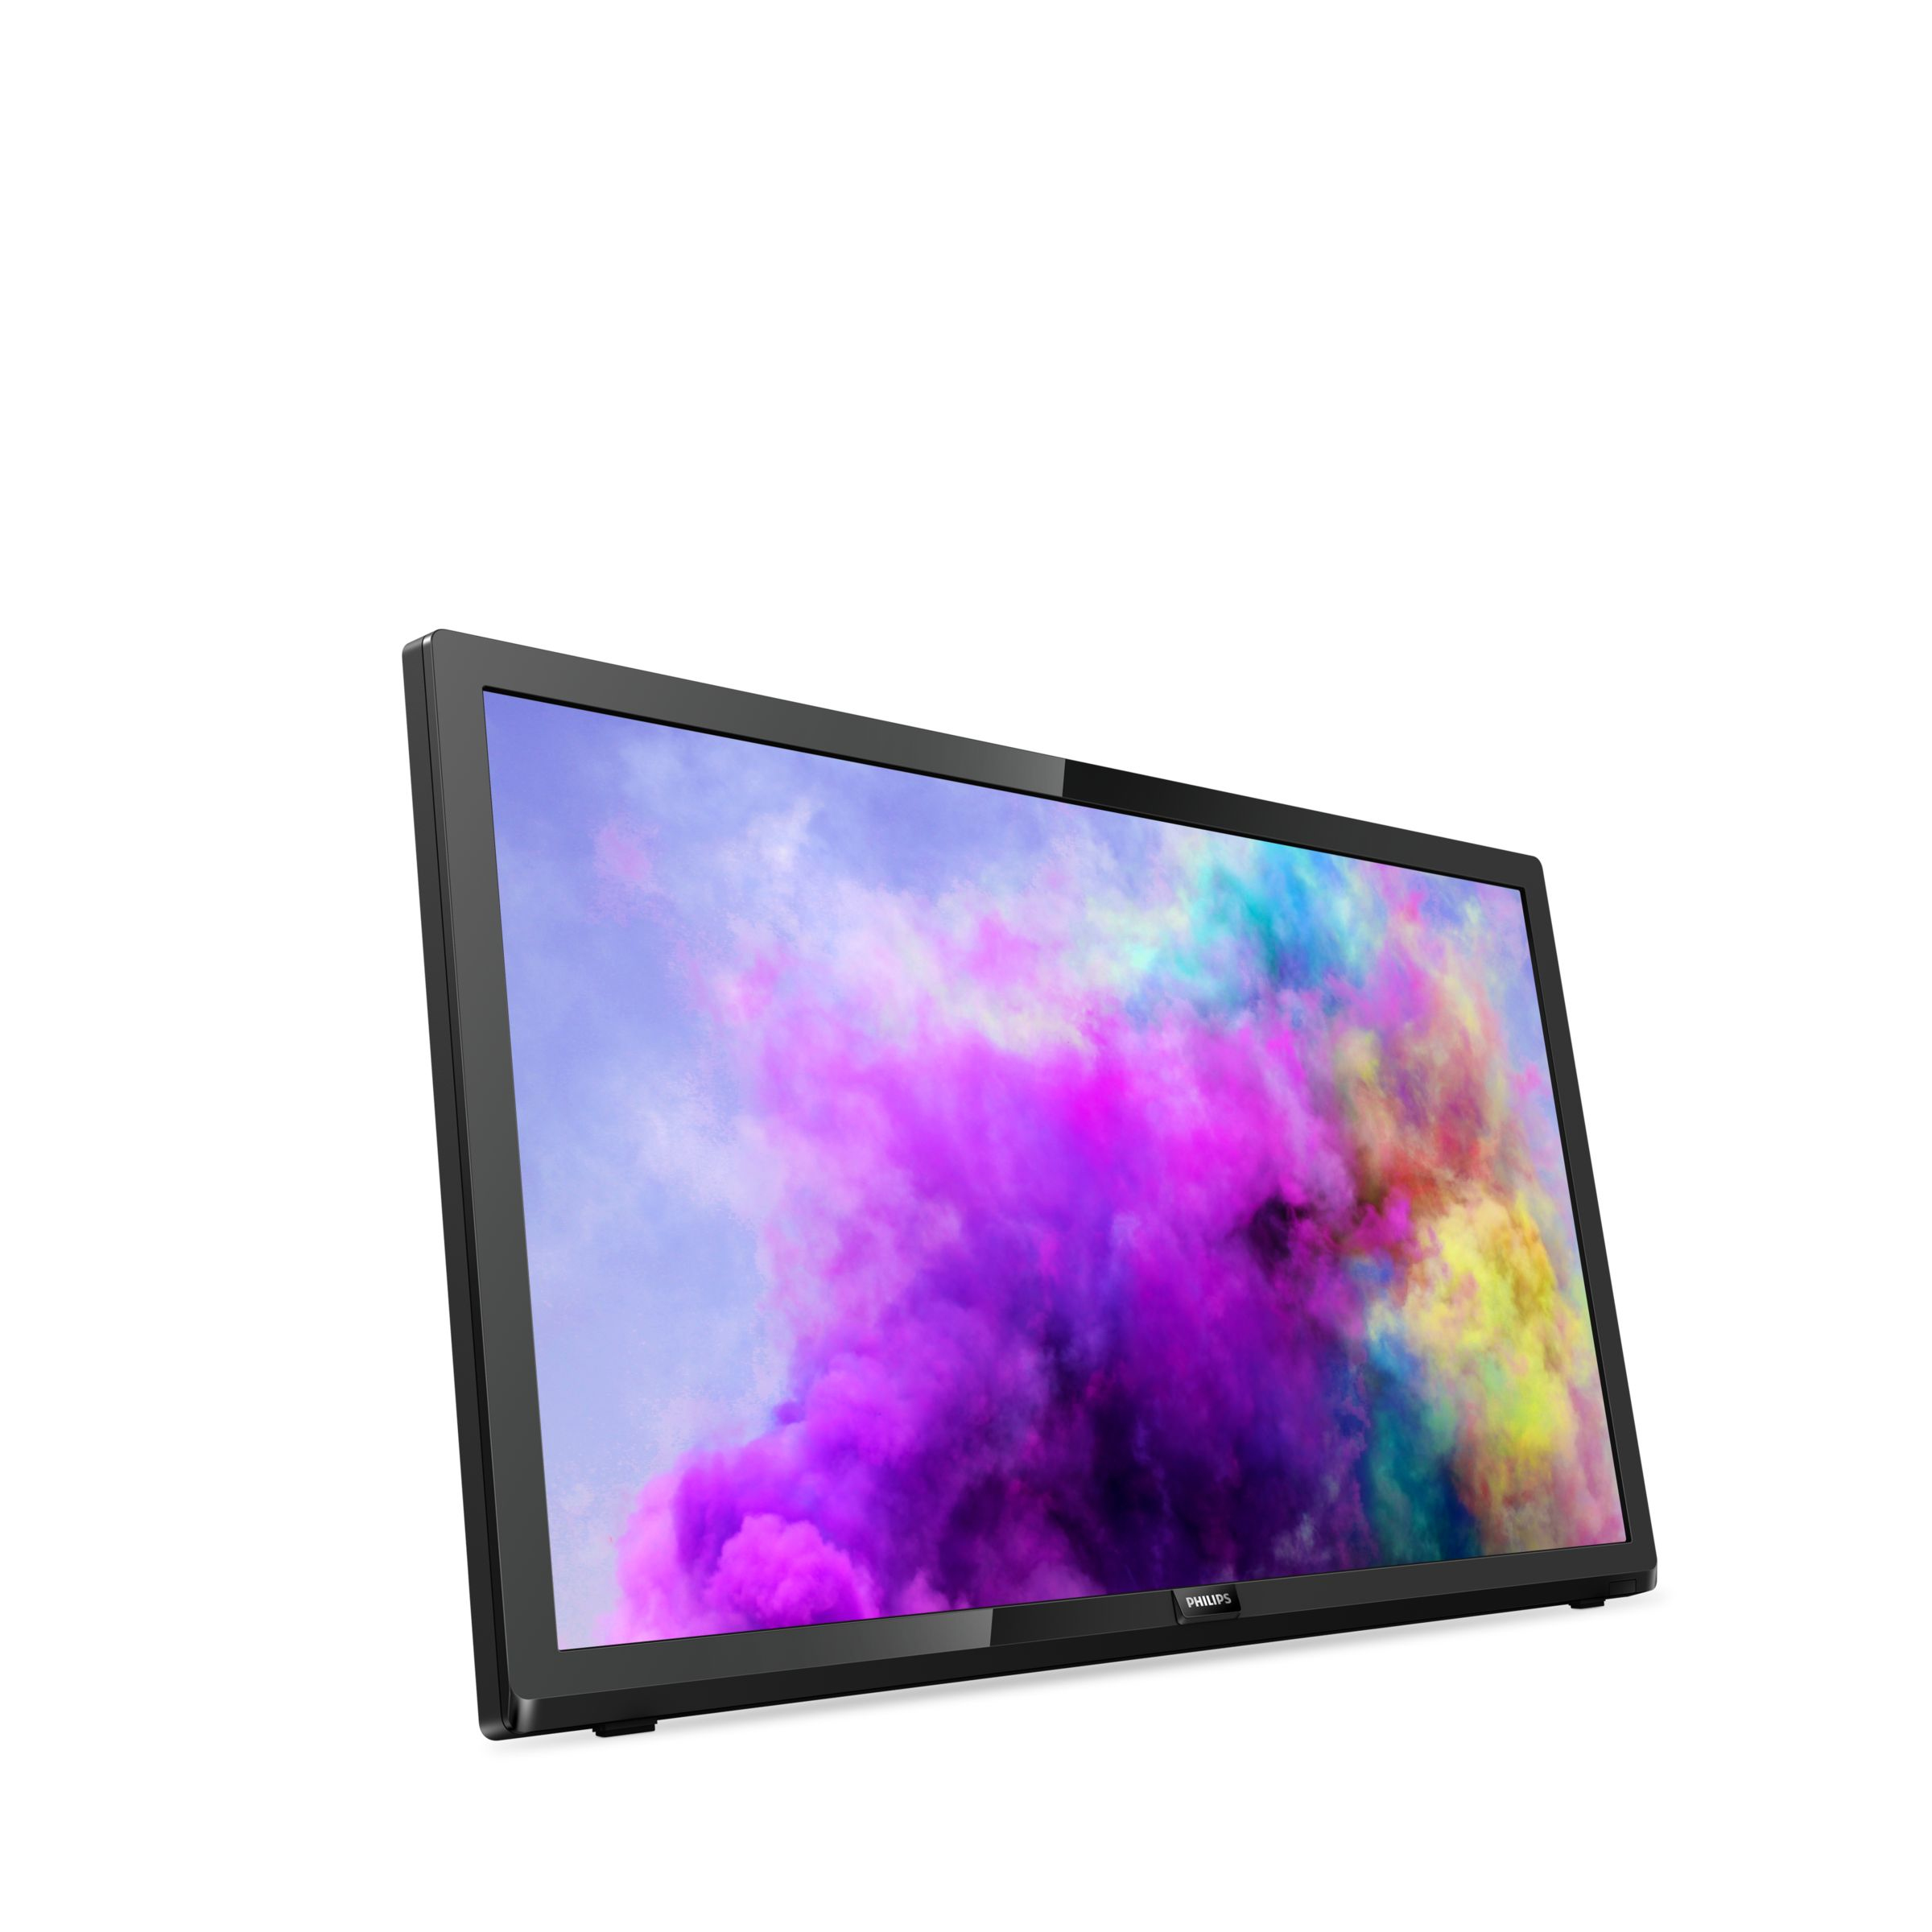 Philips 22PFS5303/12 TV 55cm 22 Zoll LED Full-HD 200Hz A DVB-T2/C/S2 für 189,00 Euro